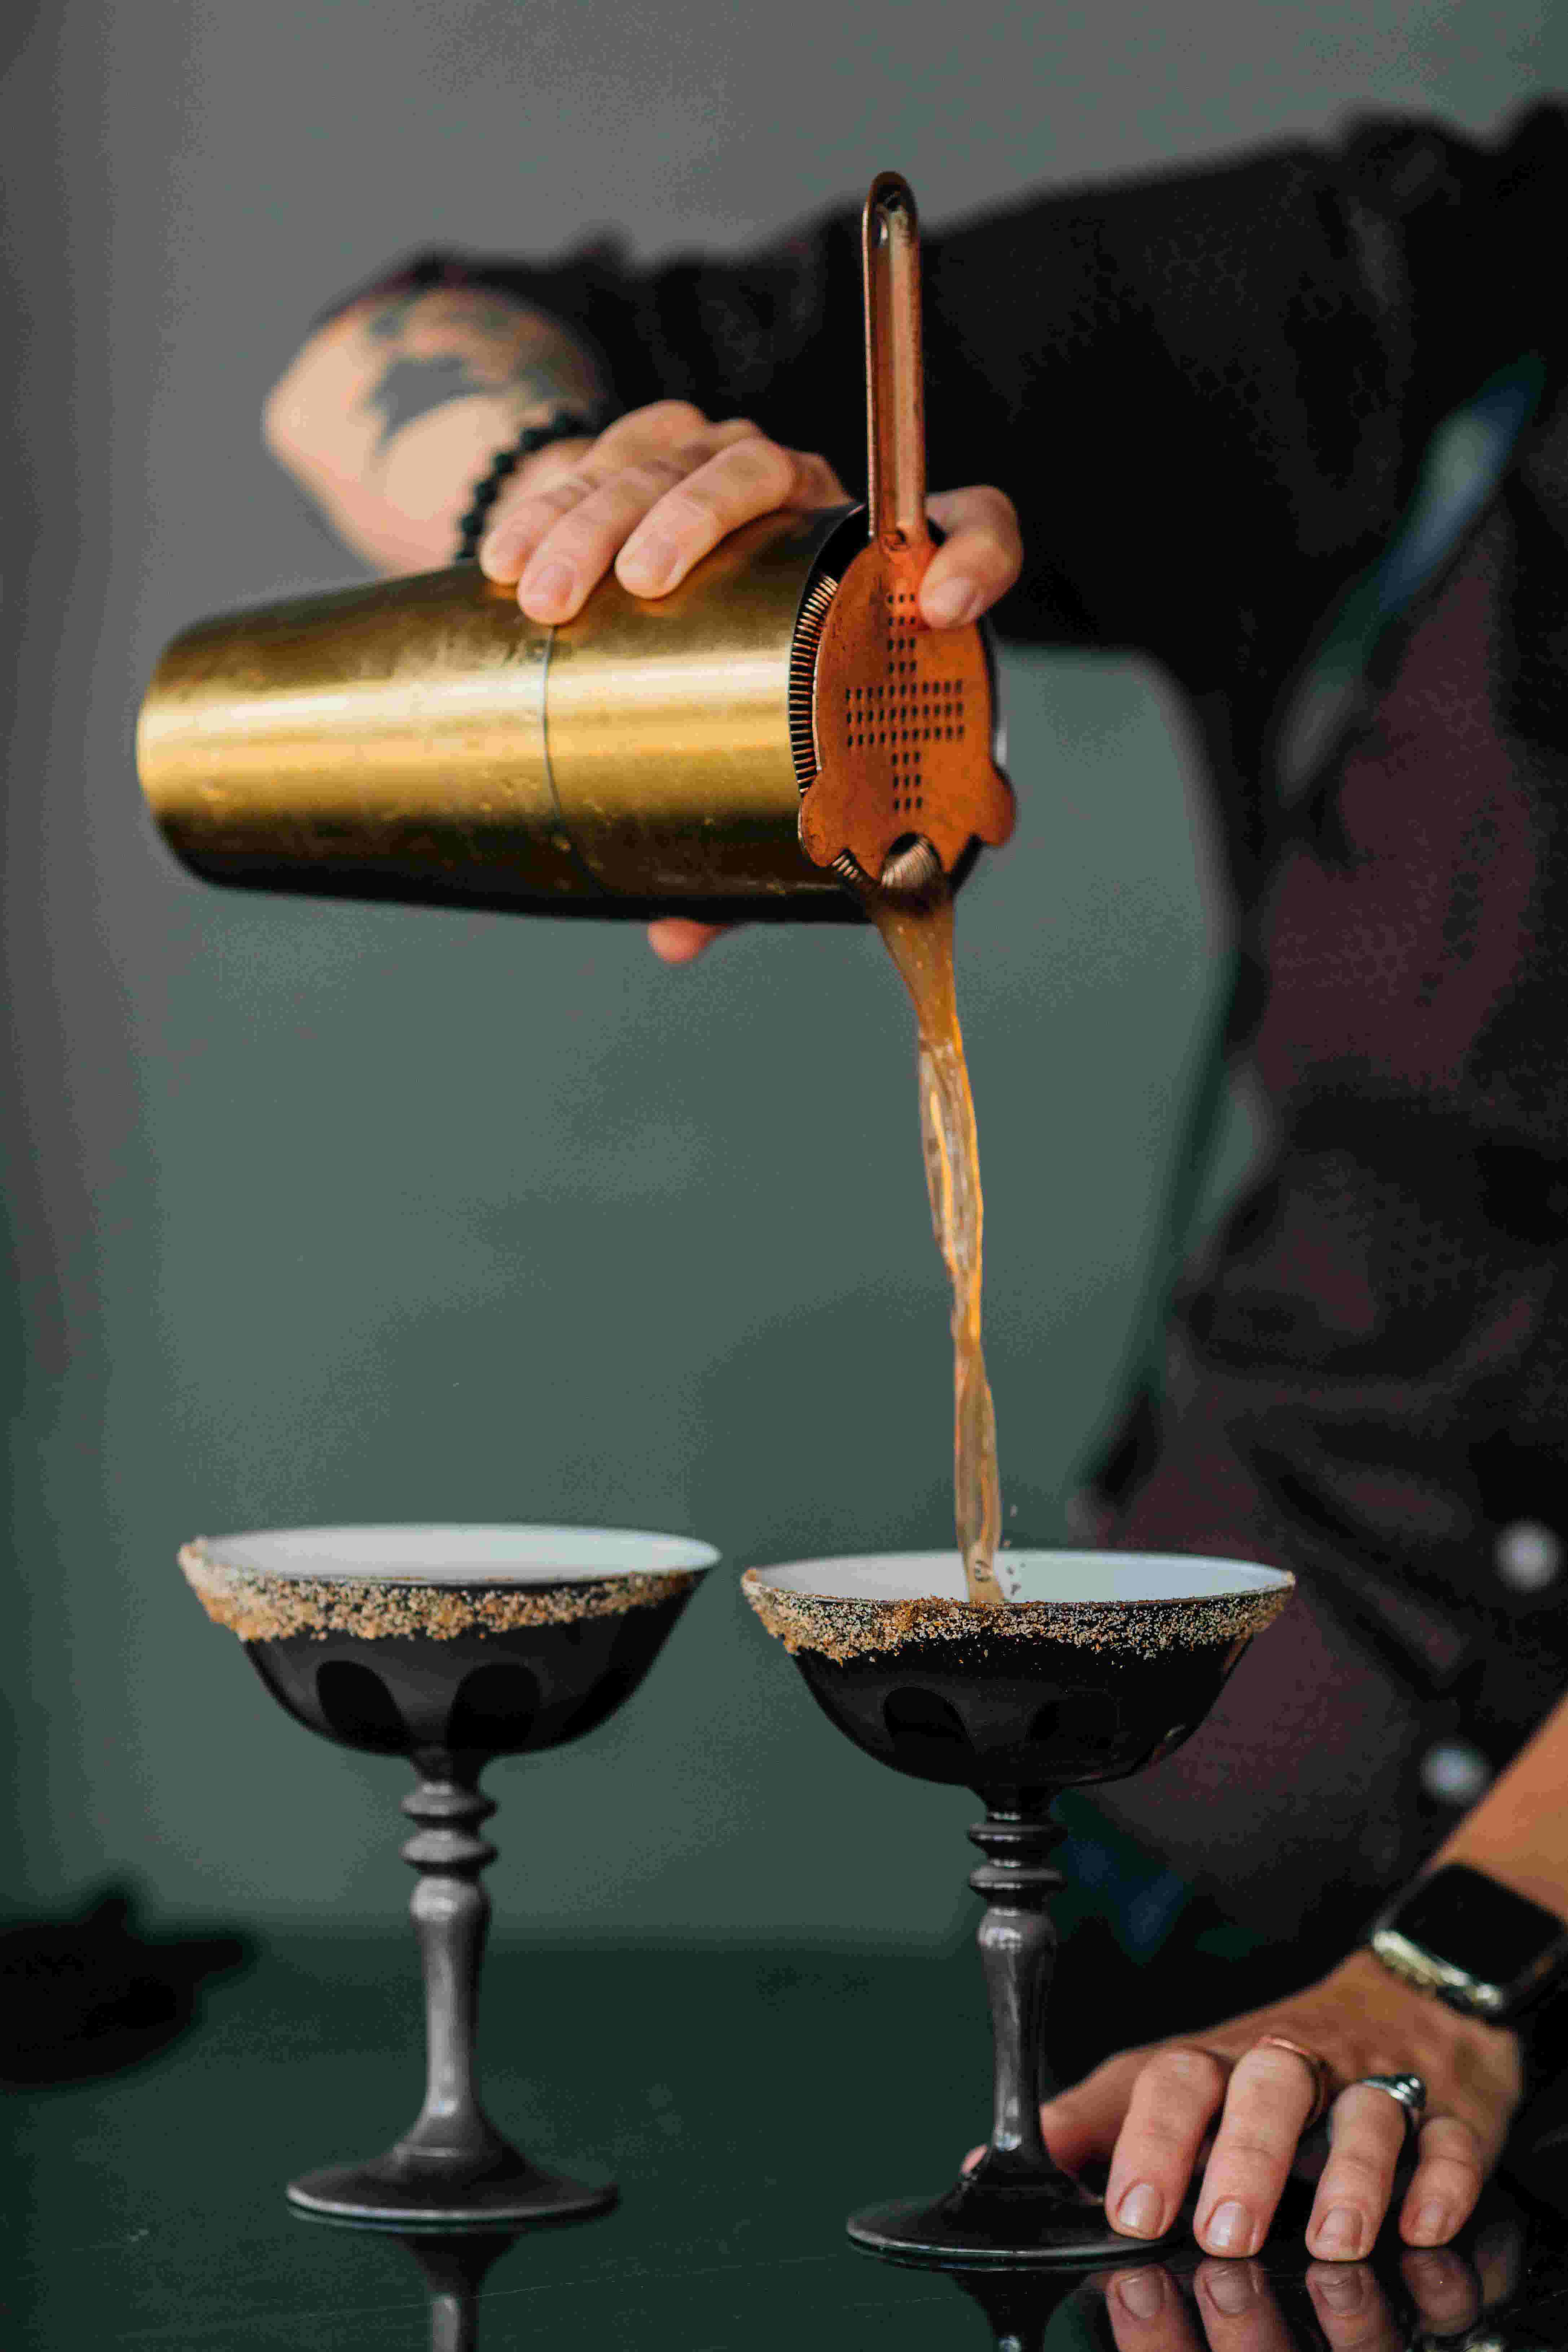 A bartender pouring a cocktail into two grey Rialto glasses from Favor using a gold mixing cup and copper strainer tool